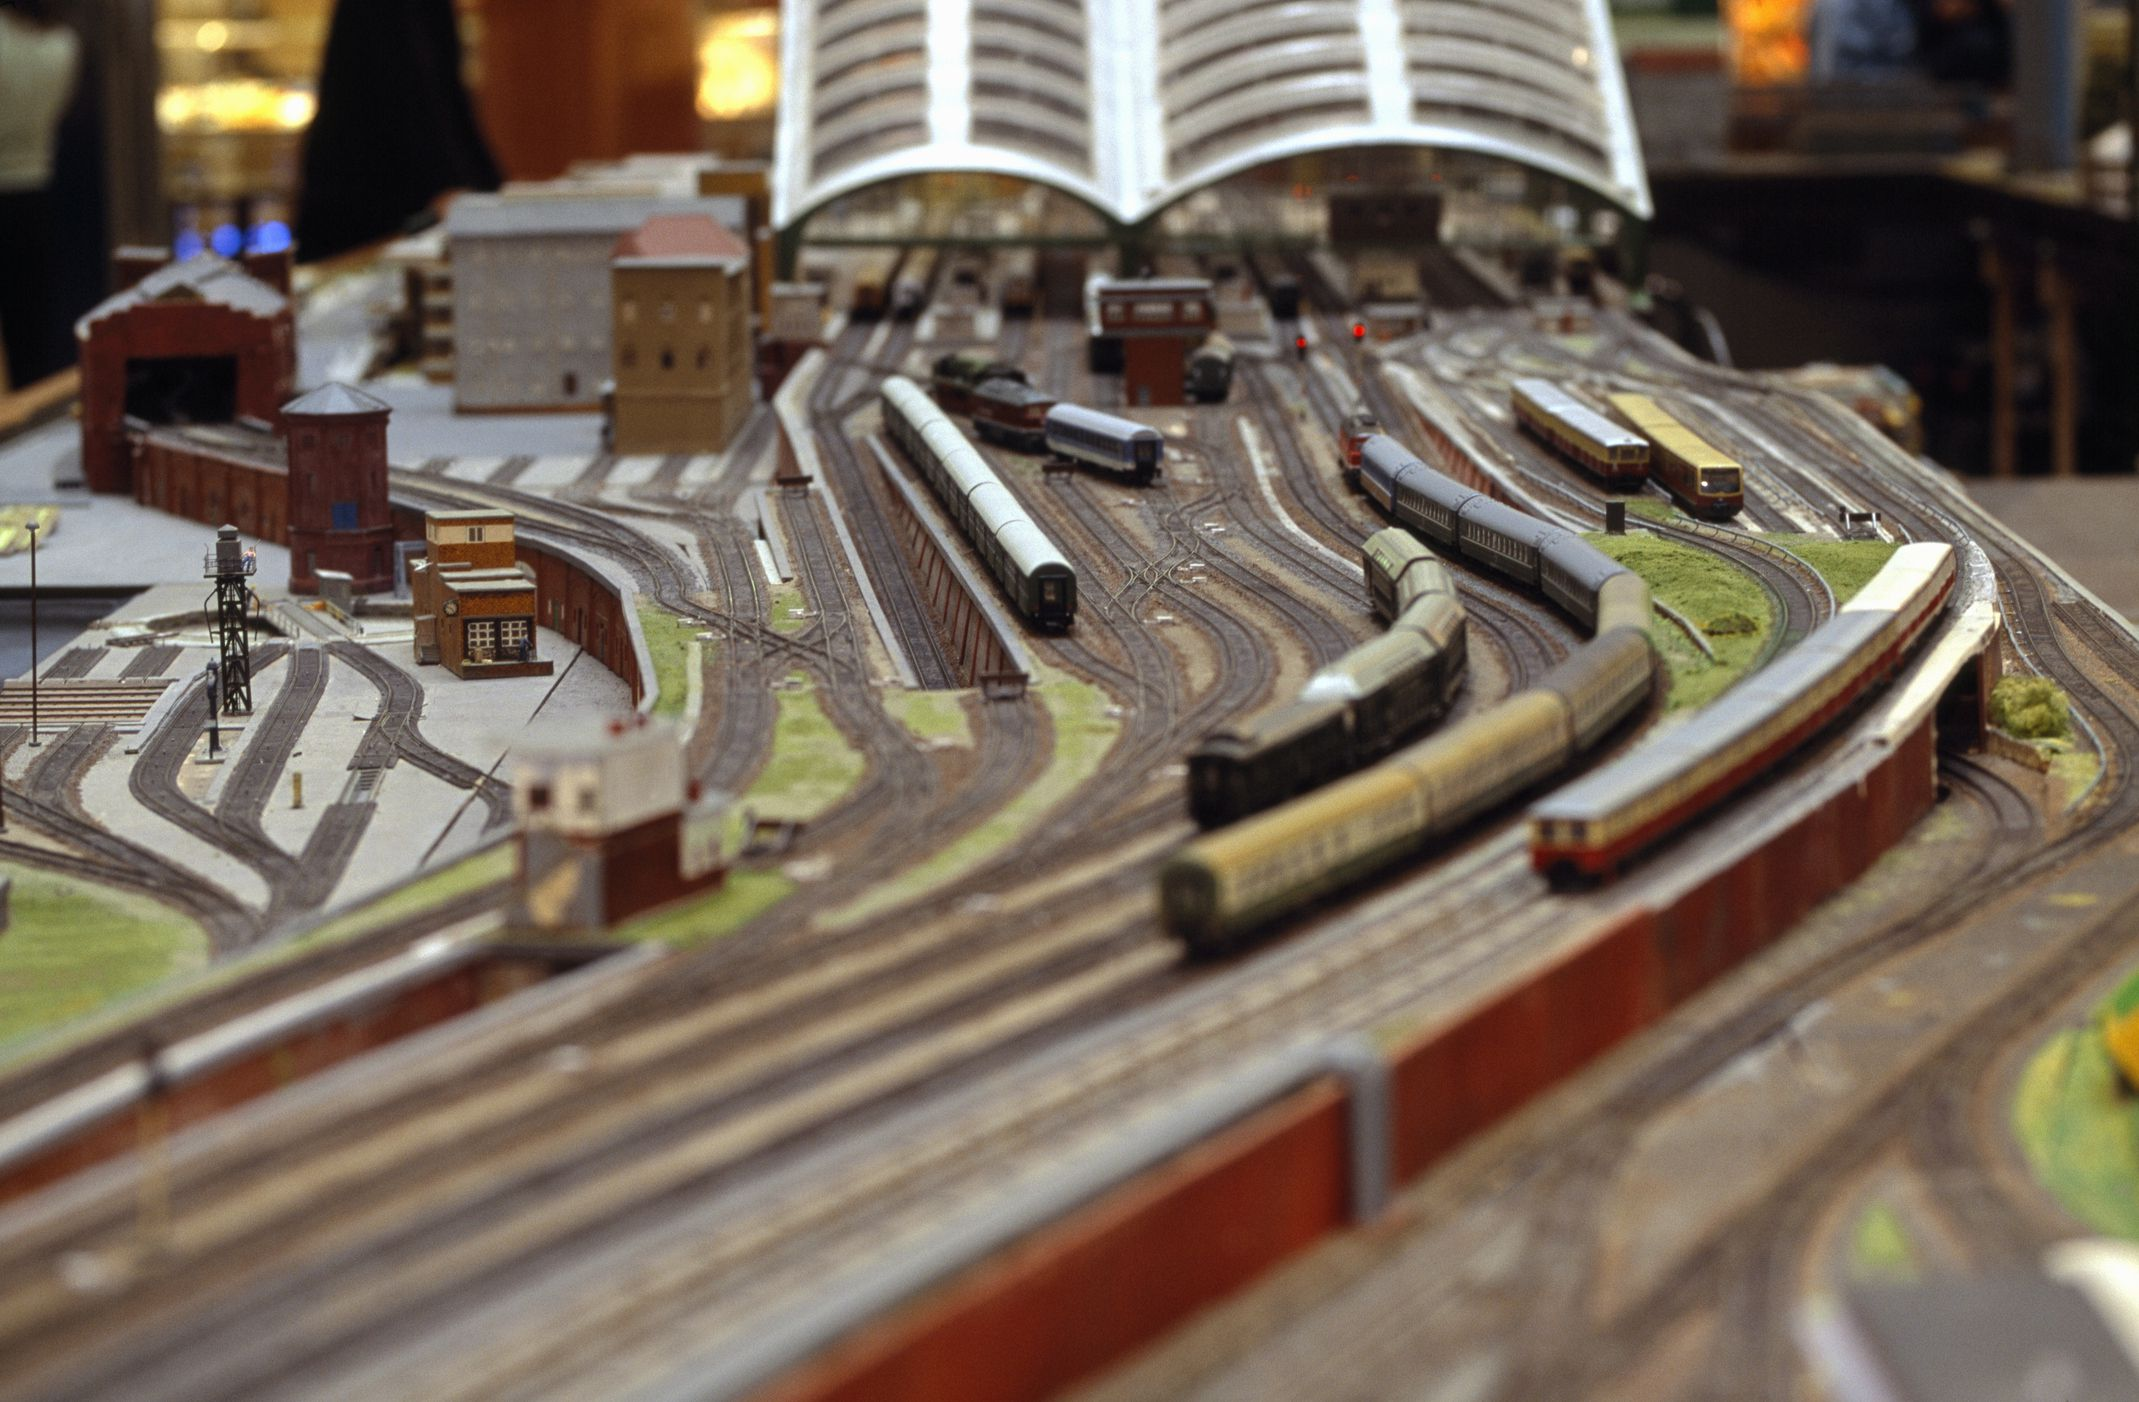 Bus Wiring for Model Railroads – Lgb Train Track Wiring